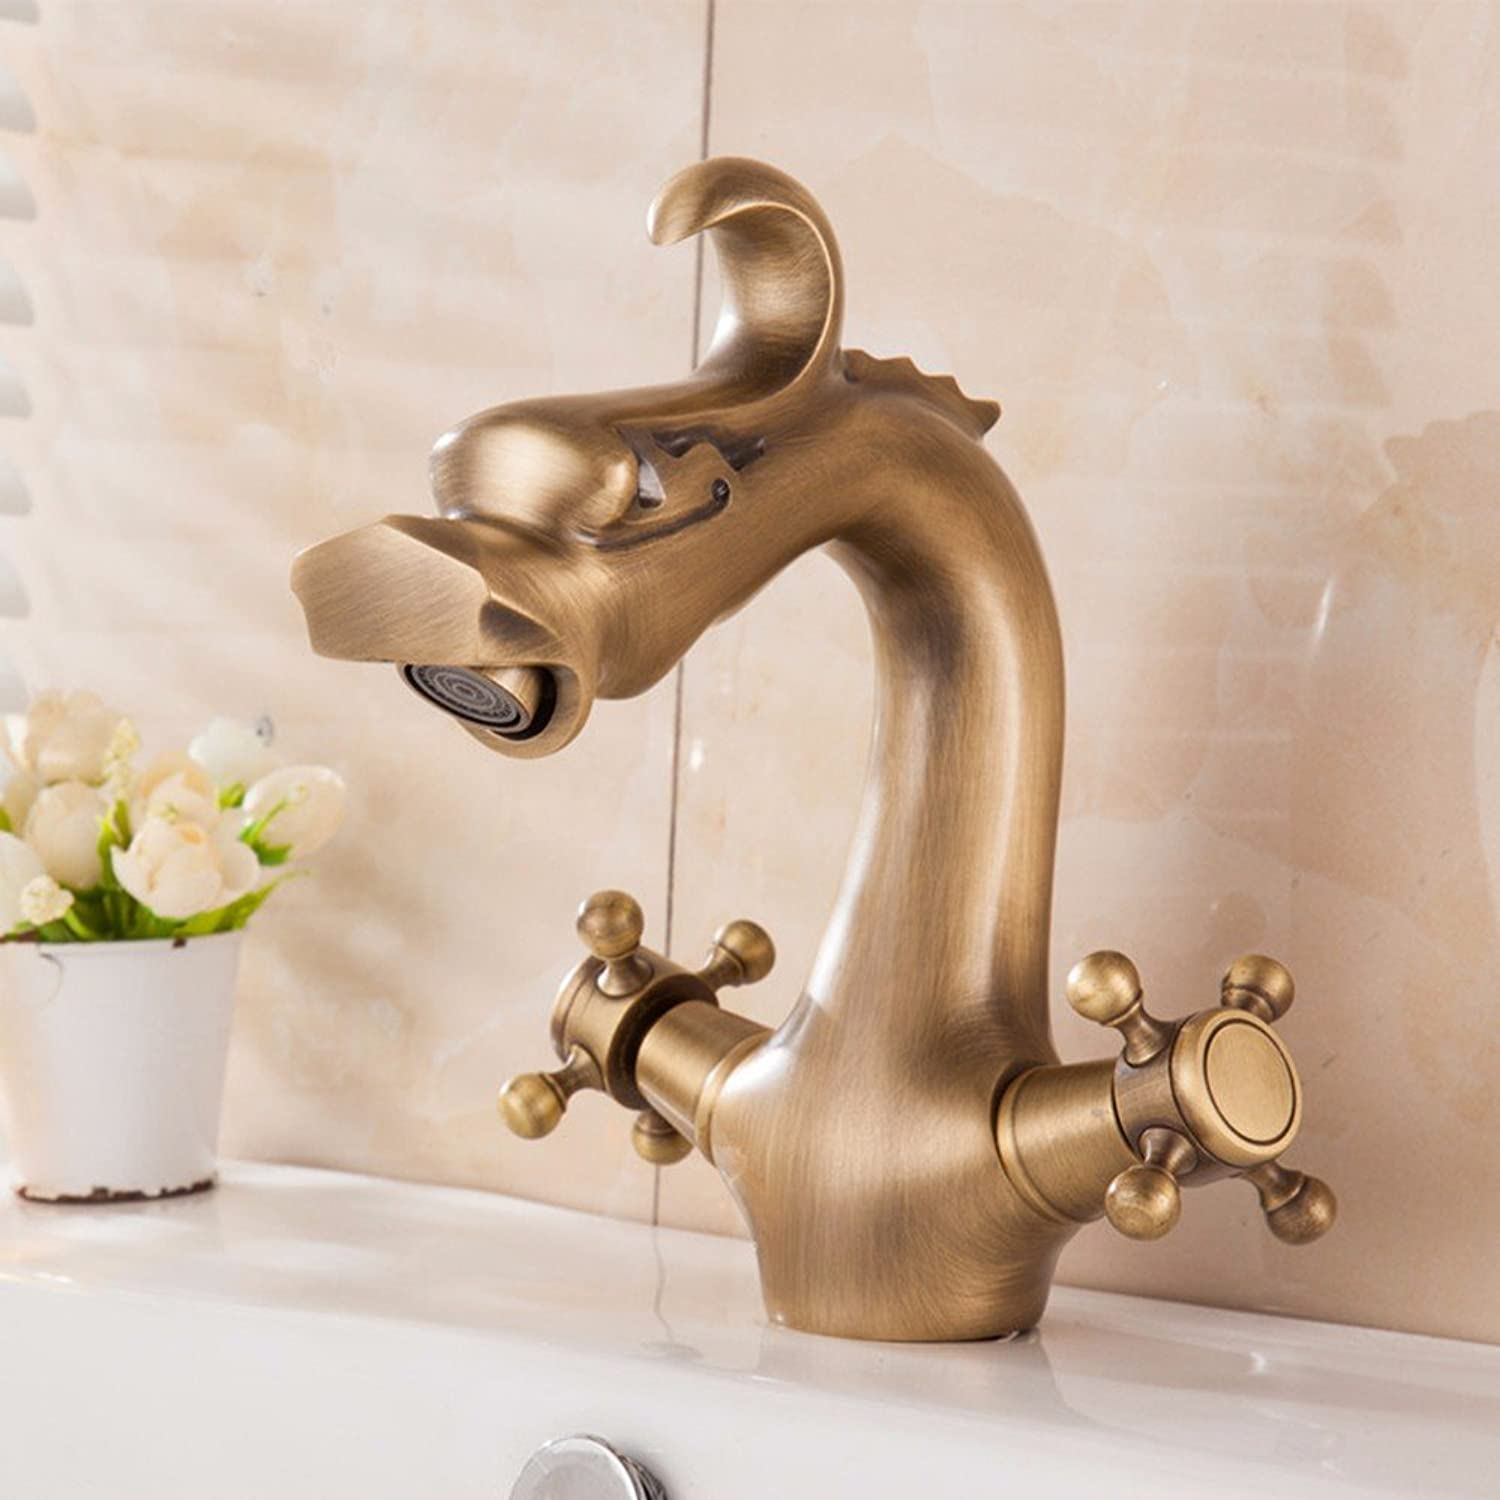 Hlluya Professional Sink Mixer Tap Kitchen Faucet Copper basin bathrooms, hot and cold, Single Hole, sink Faucet 12